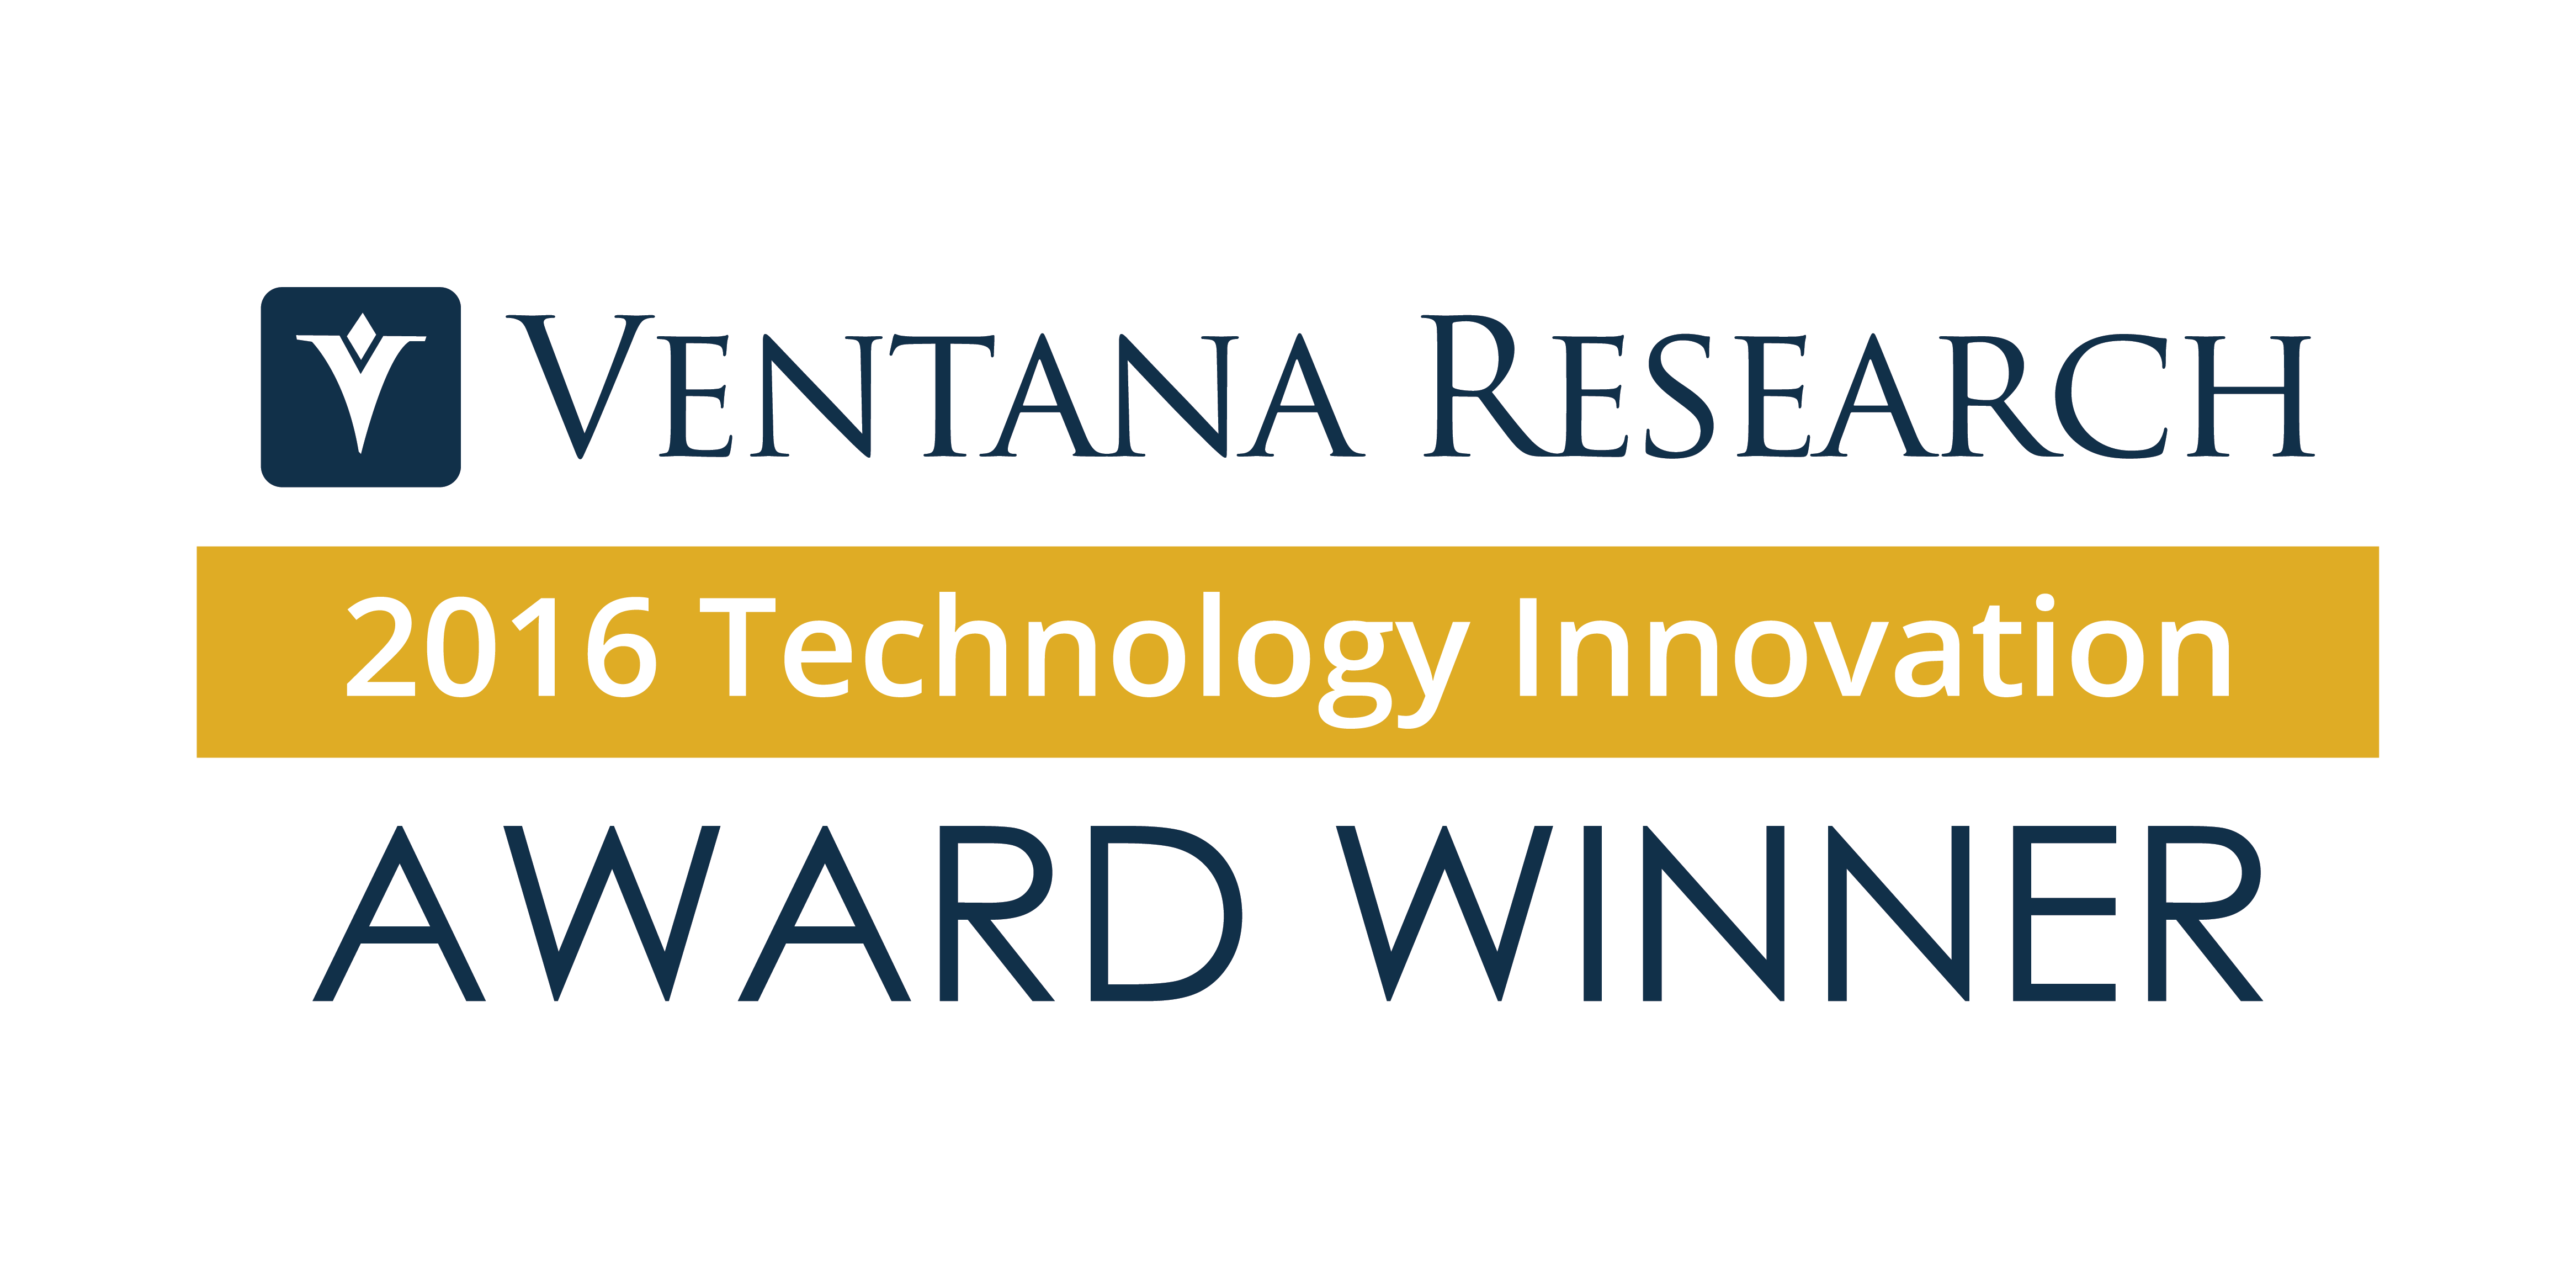 VentanaResearch_TechnologyInnovationAwards_Winner2016_white-2.png